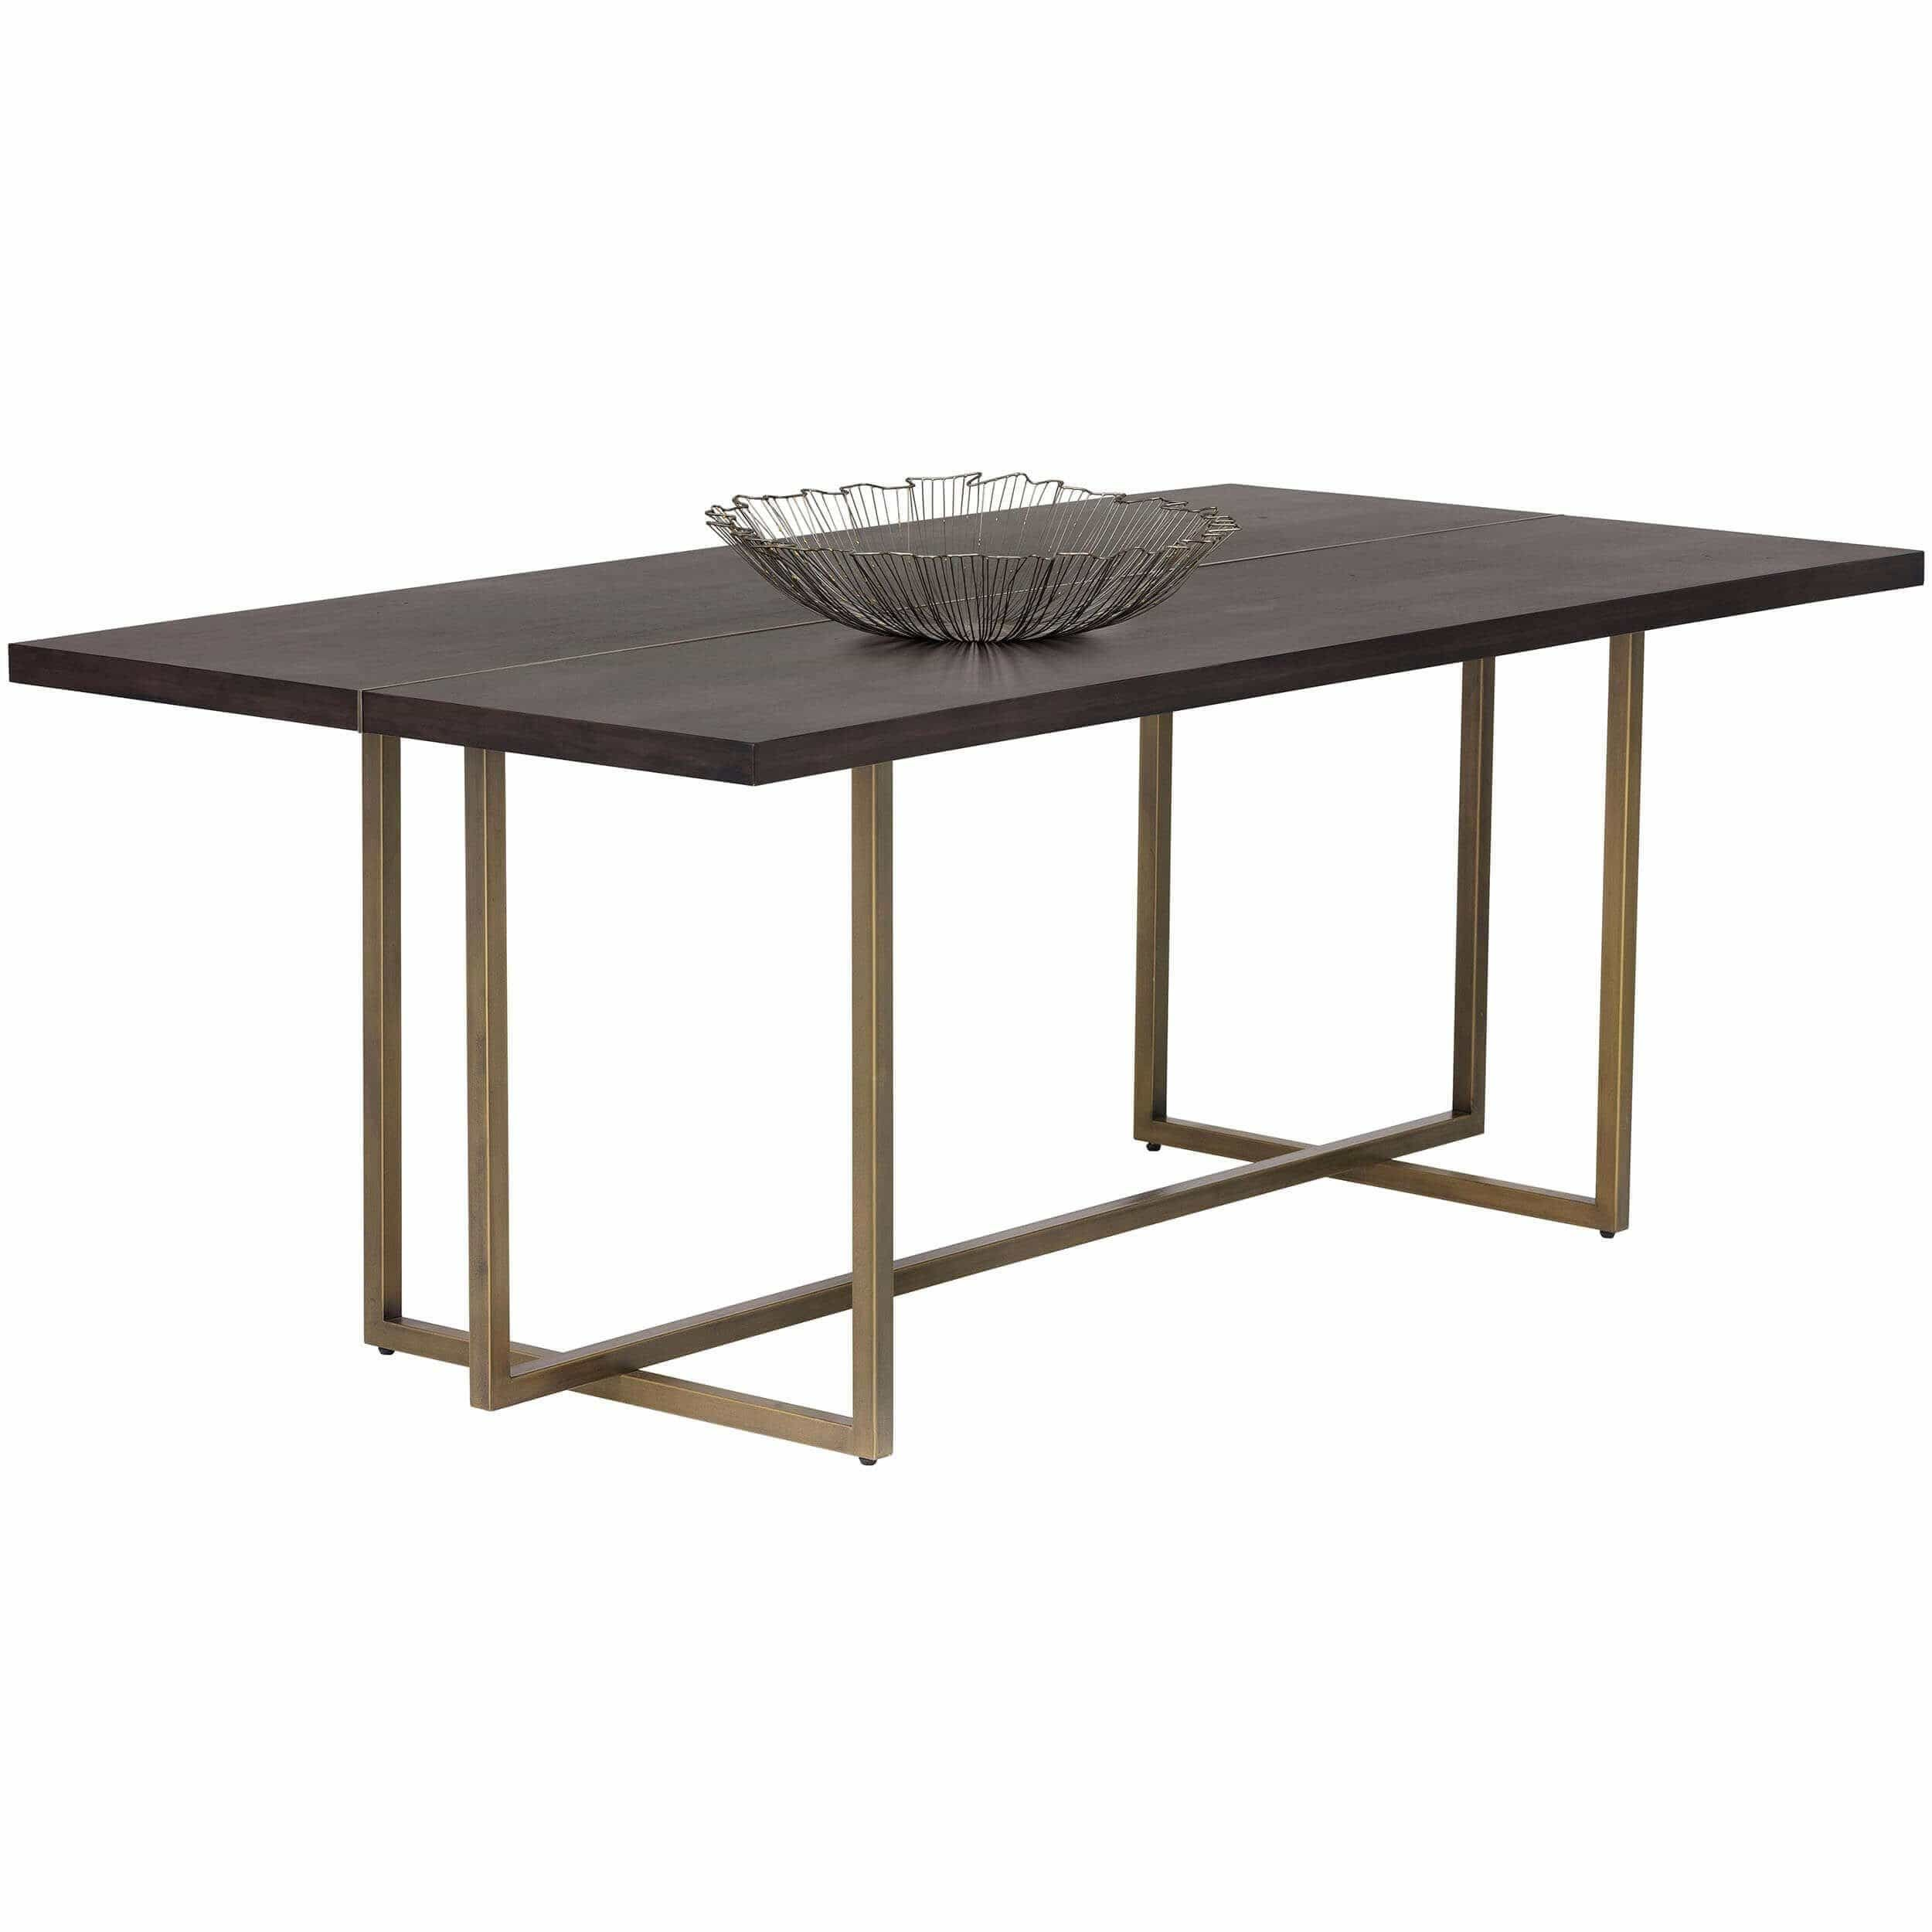 Jade Dining Table In 2021 Modern Dining Table Dining Table Modern Table [ 2500 x 2500 Pixel ]